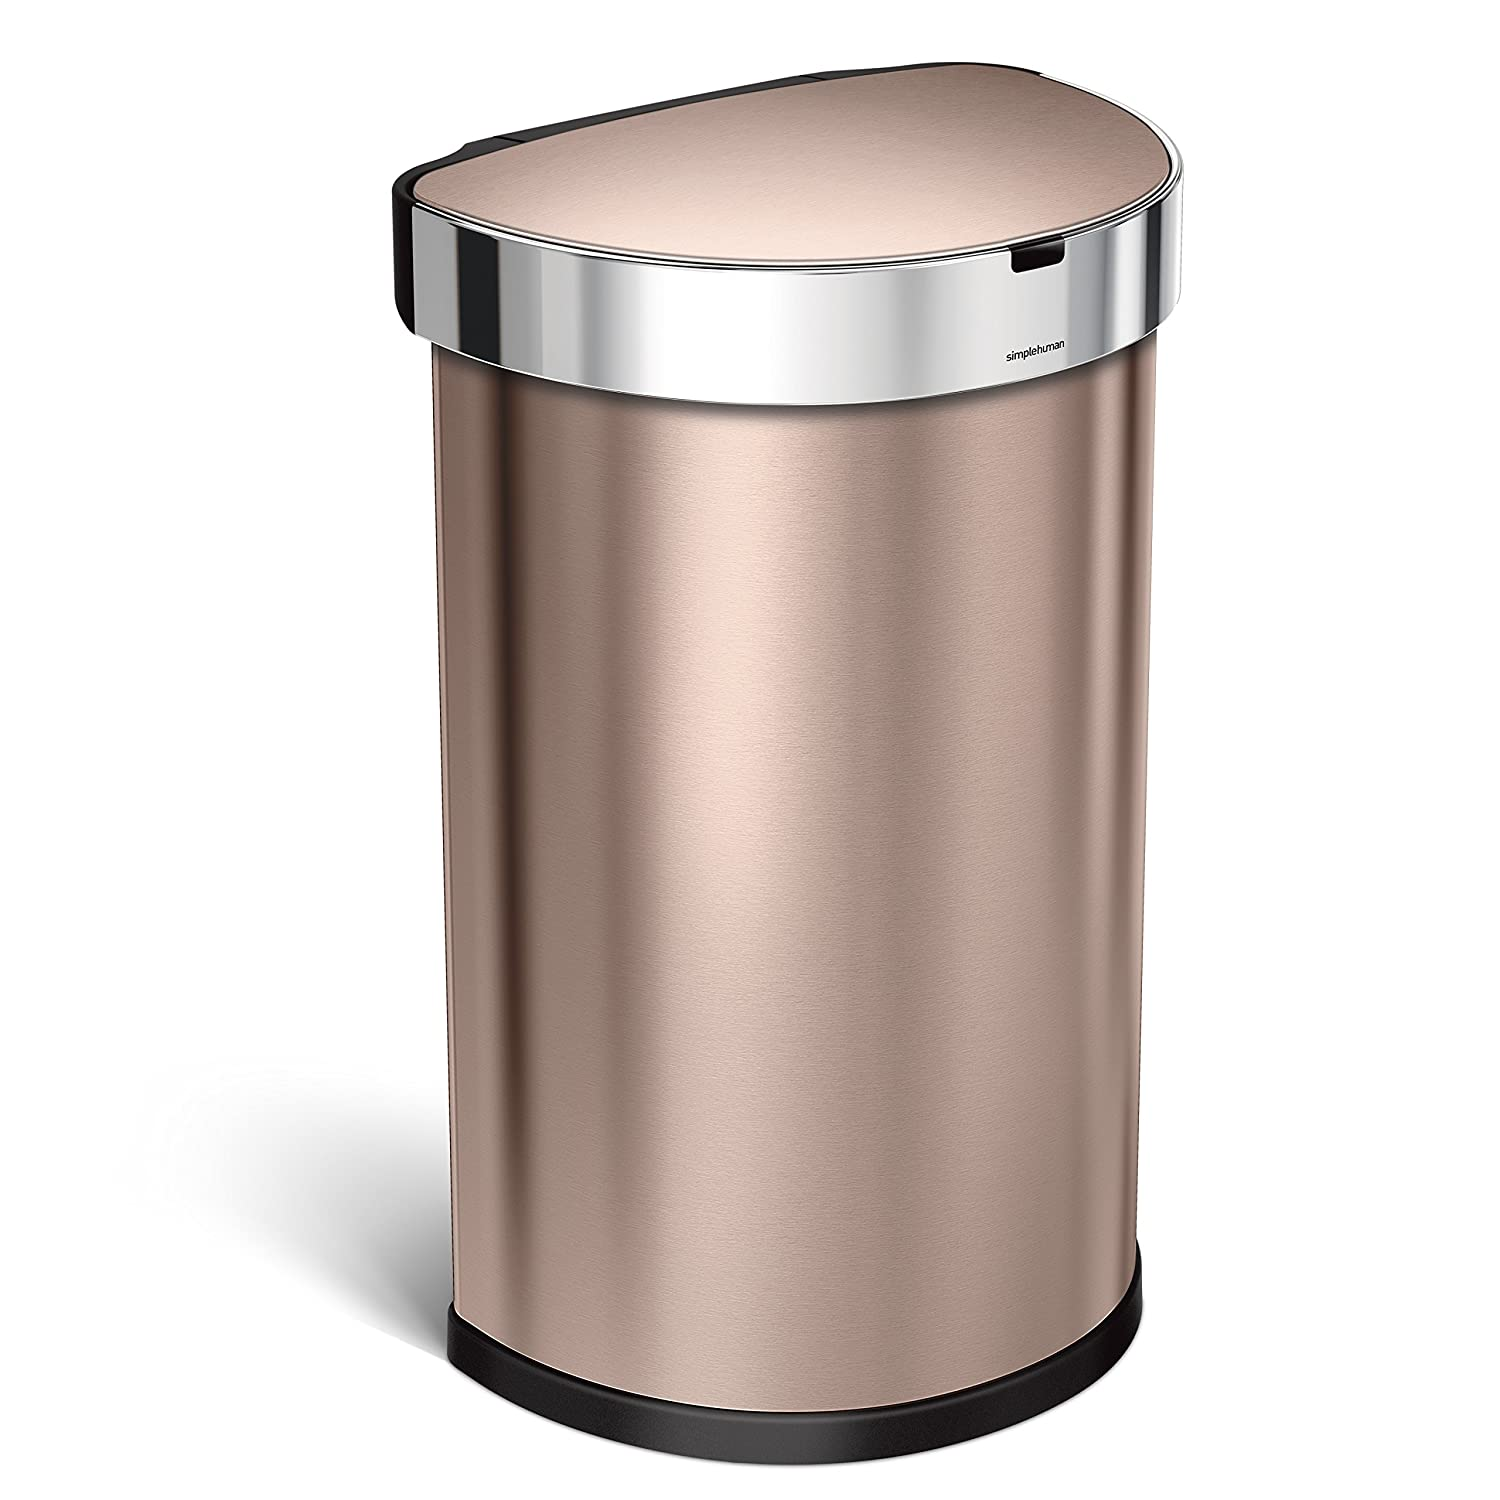 Amazon.com: Simplehuman 45L Semi Round Sensor Can, Touchless Motion Sensor  Garbage Bin, Rose Gold Stainless Steel, 45 L / 11.8 Gal: Home U0026 Kitchen